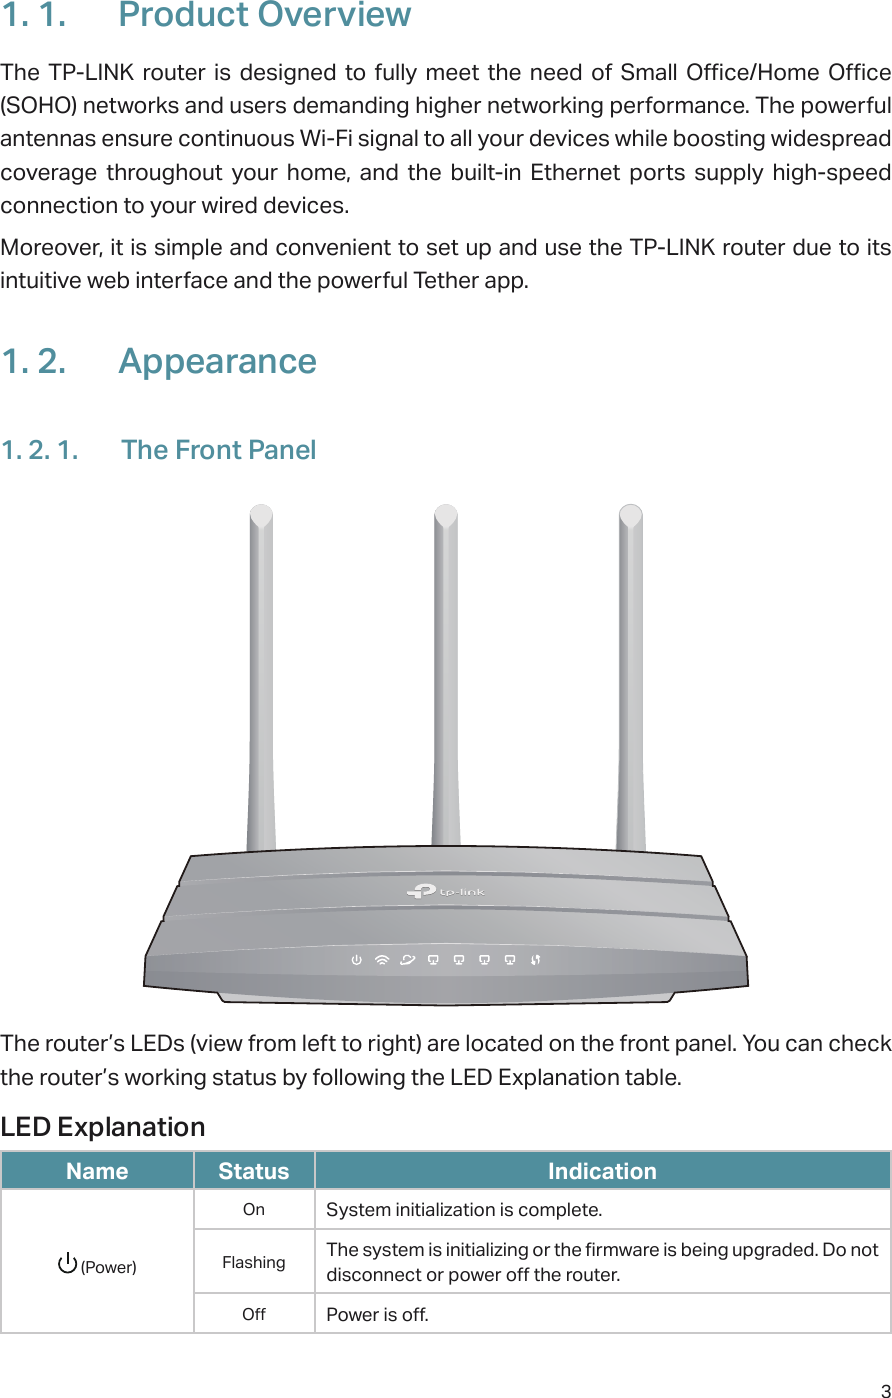 Tp Link Technologies Wr1043nv5 450mbps Wireless N Gigabit Router Network Diagram Product Overviewthe Is Designed To Fully Meet The